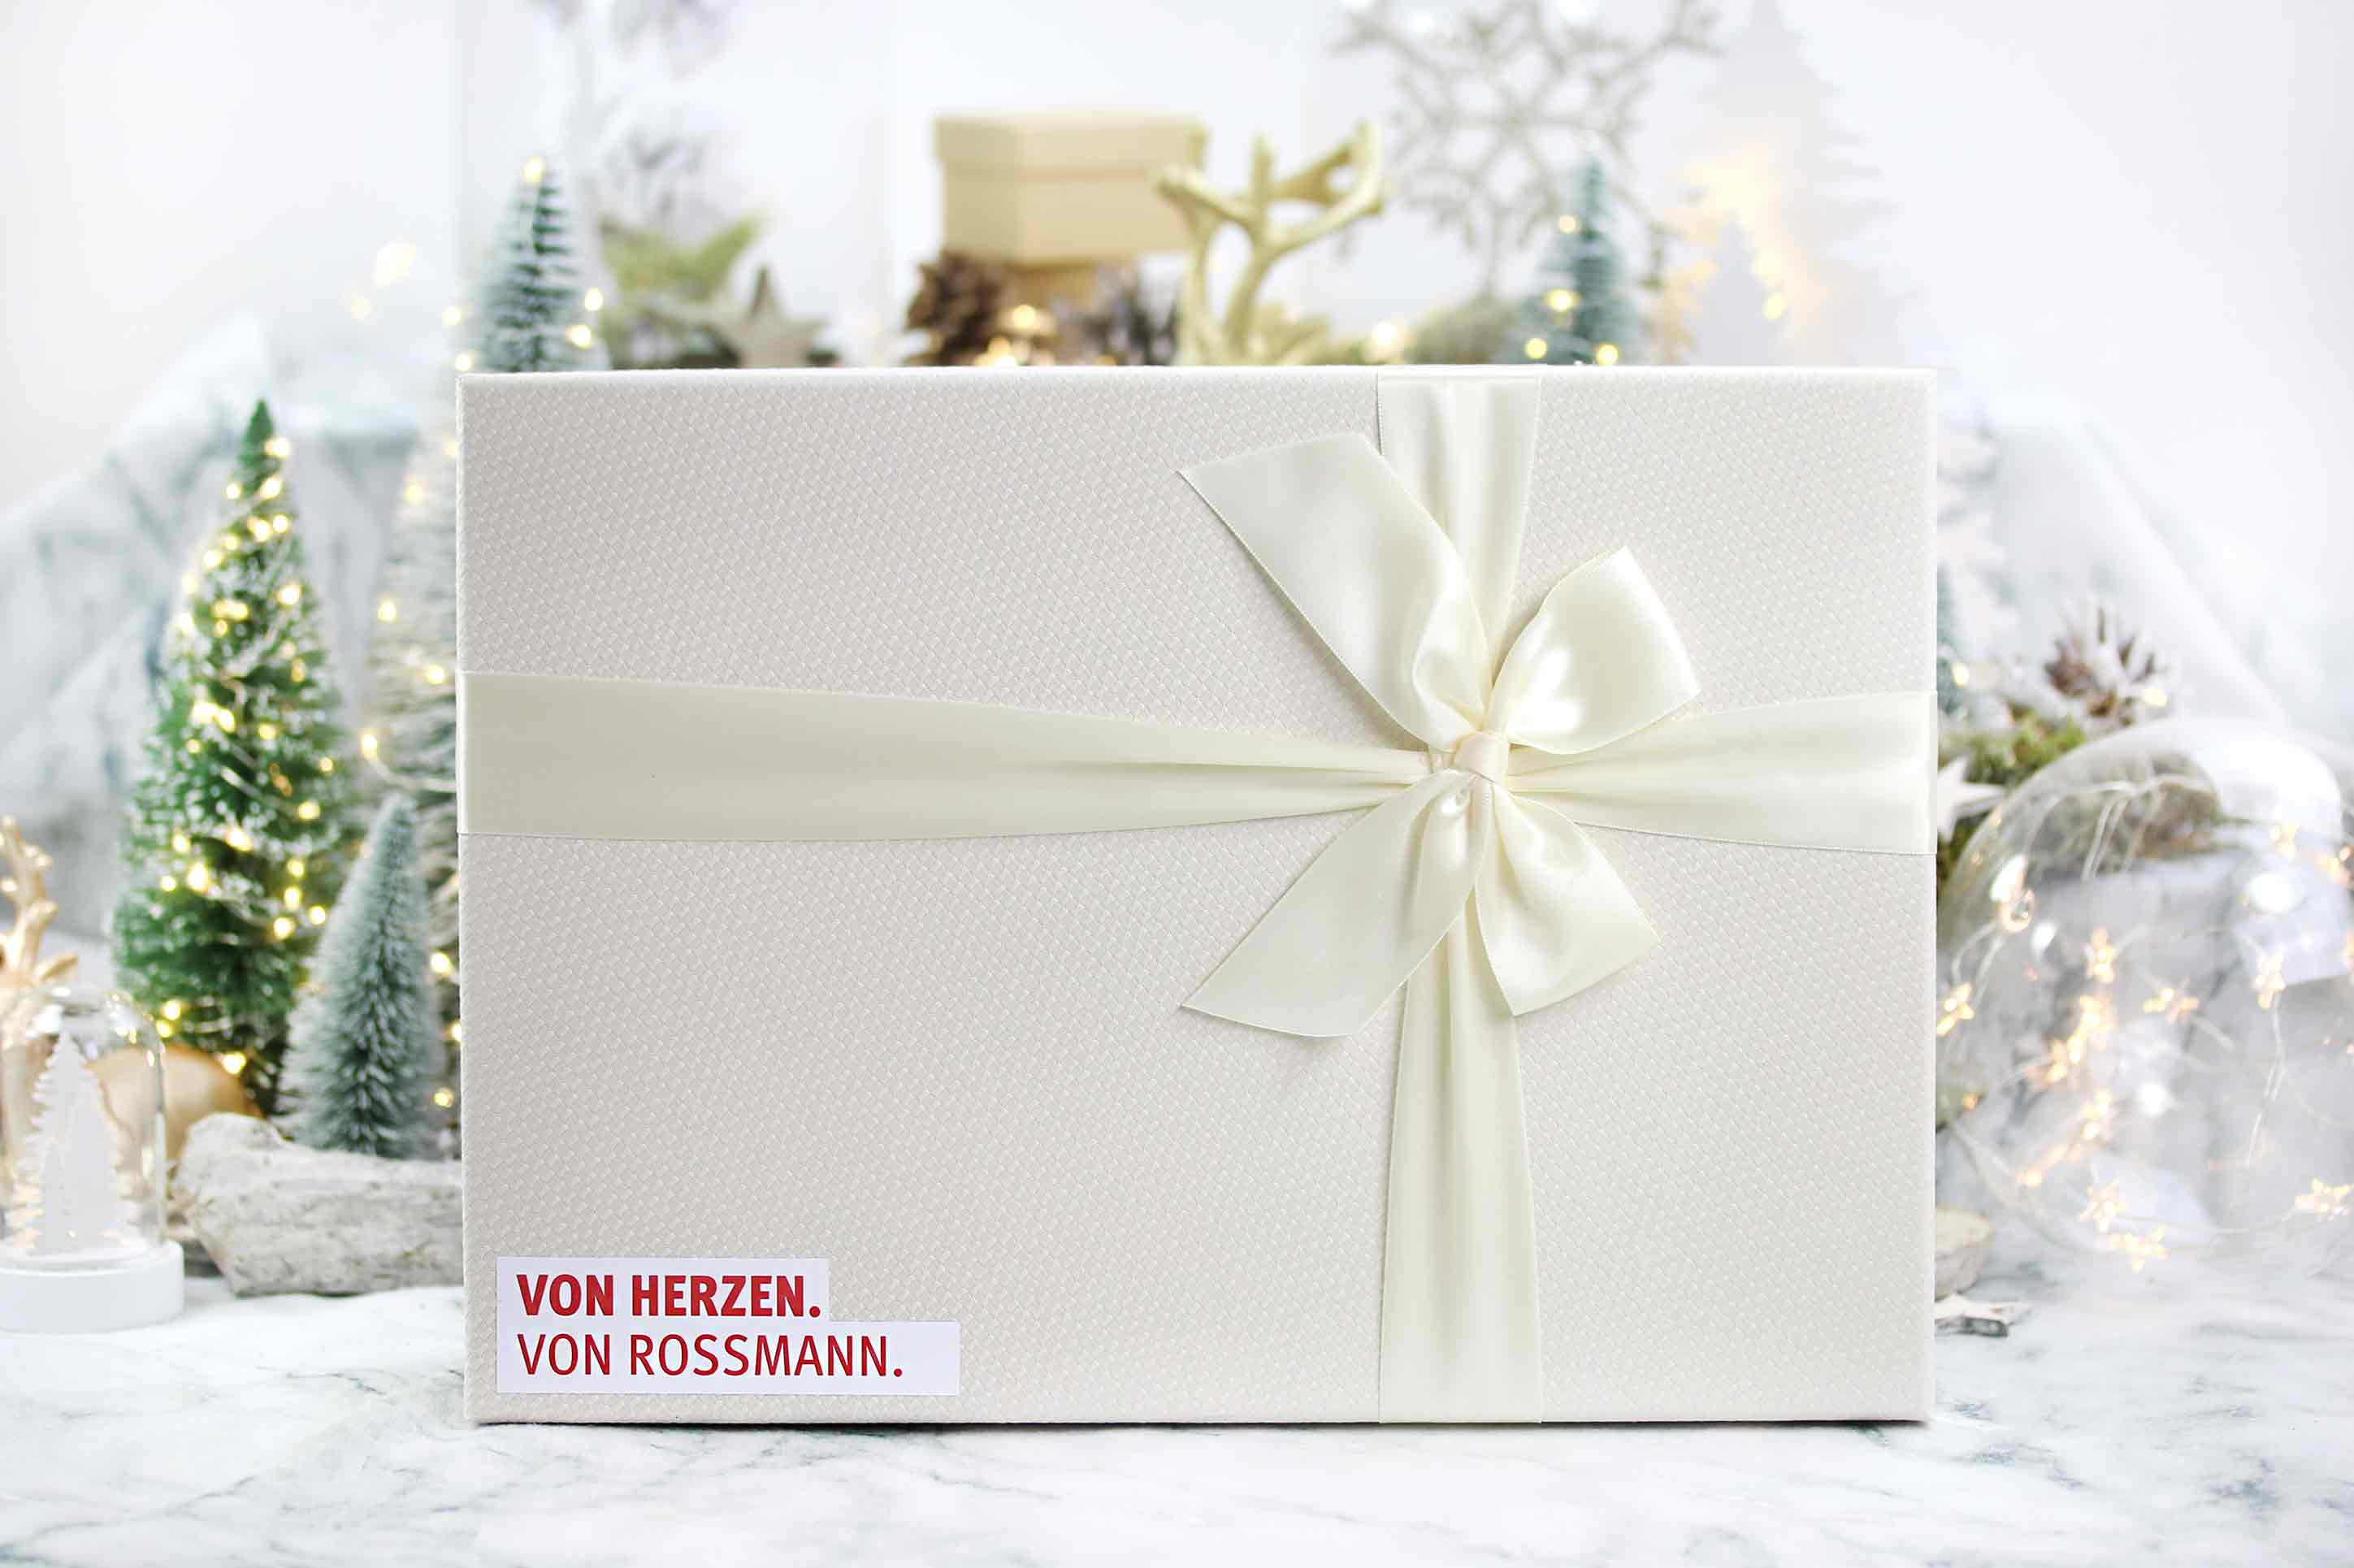 adventskalender tag 11 3x rossmann wellness beauty. Black Bedroom Furniture Sets. Home Design Ideas